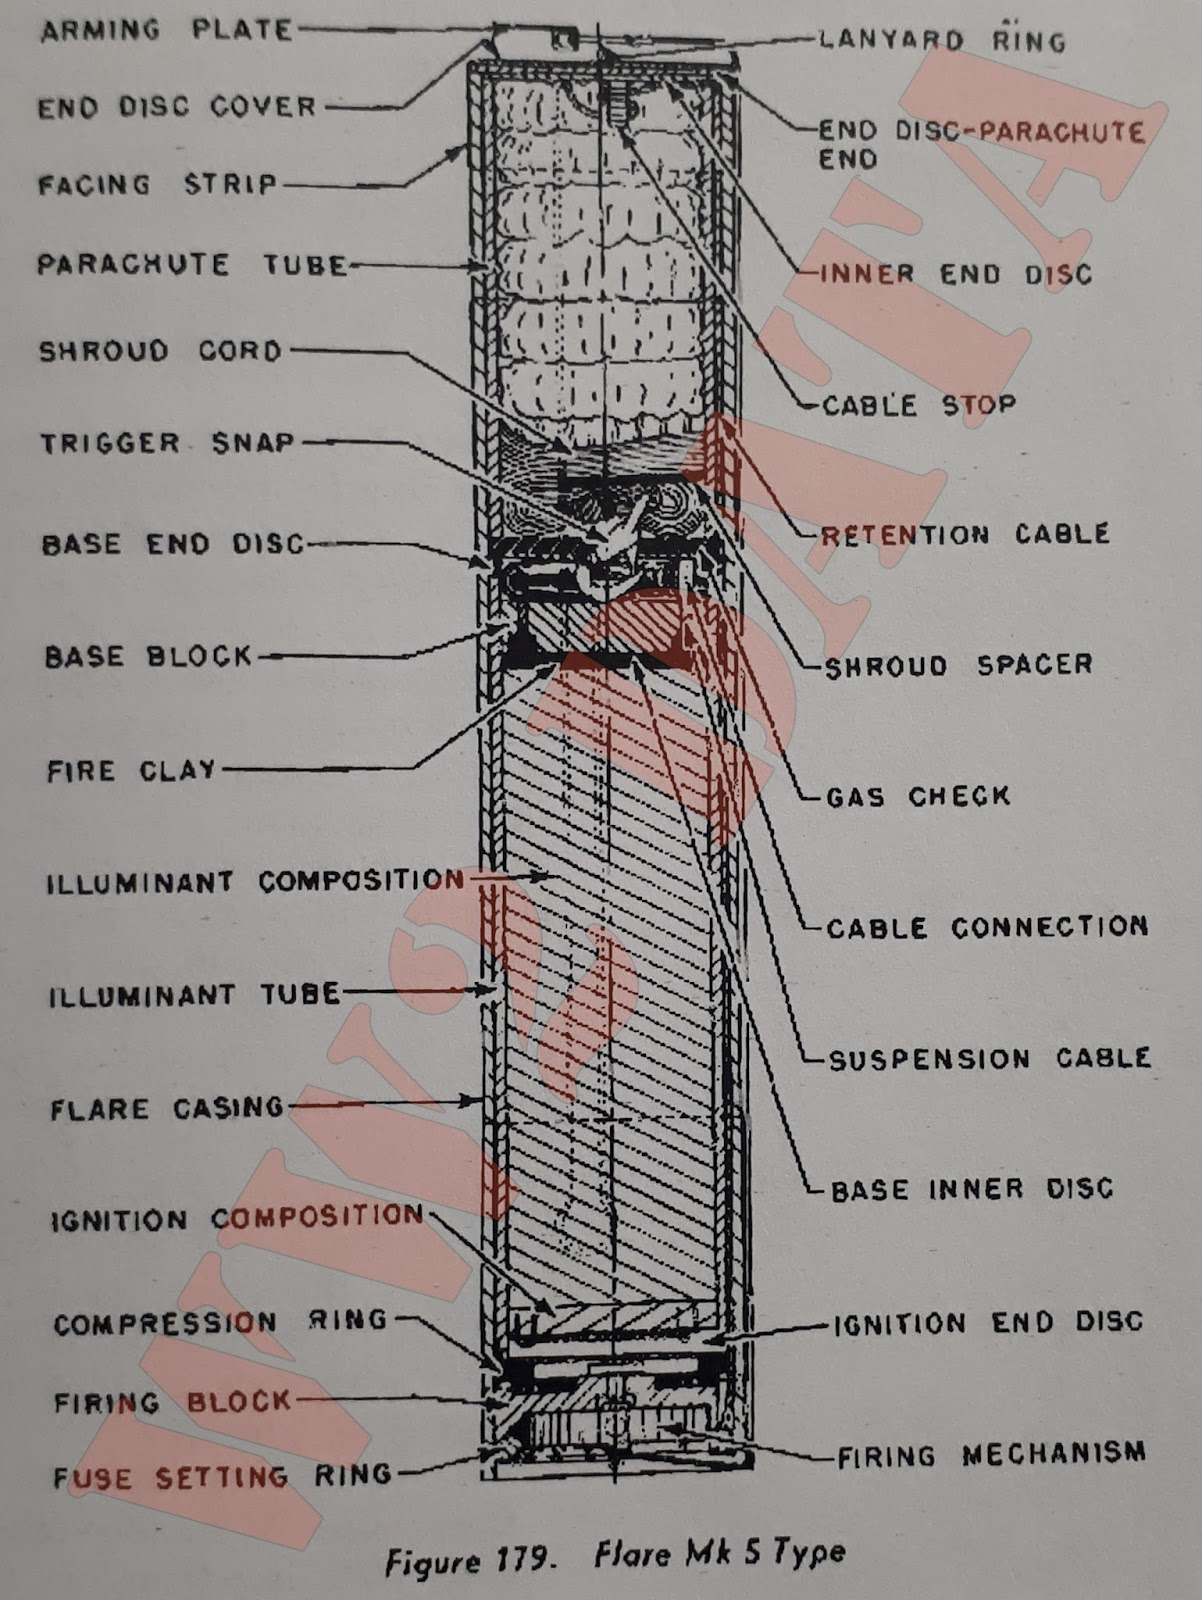 WW2 Equipment Data: American Projectiles and Explosives - Drift